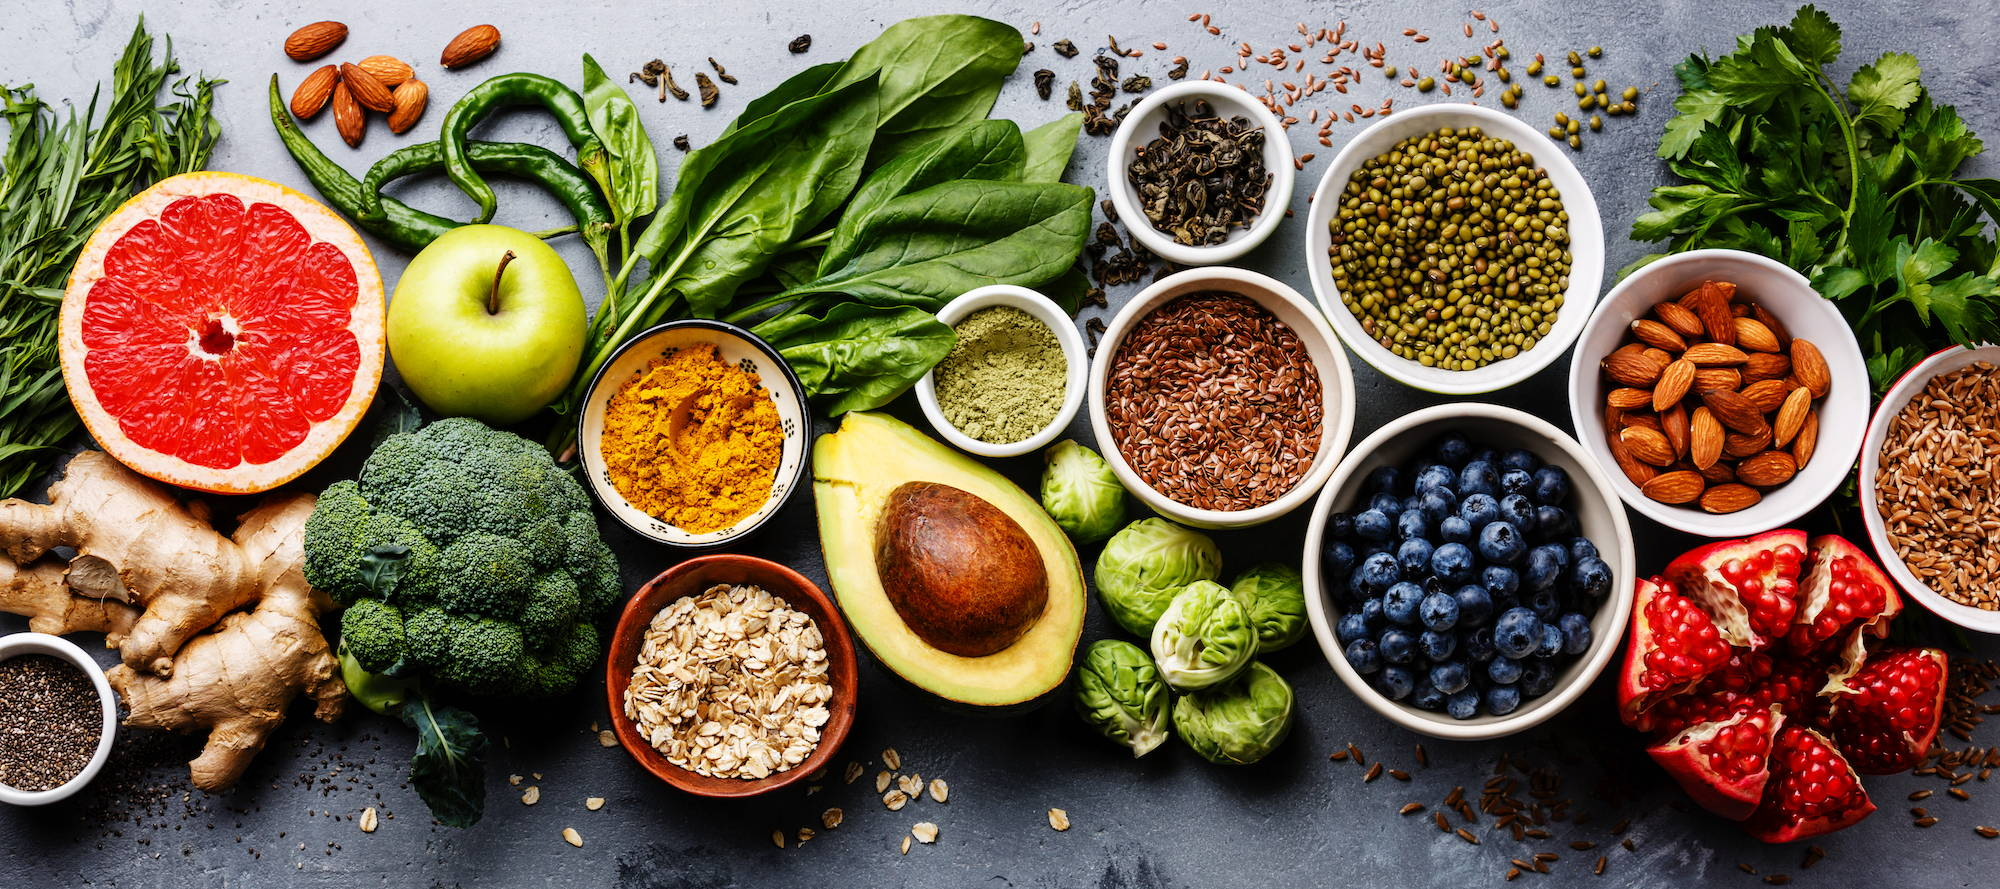 a wholefood diet supports oral health